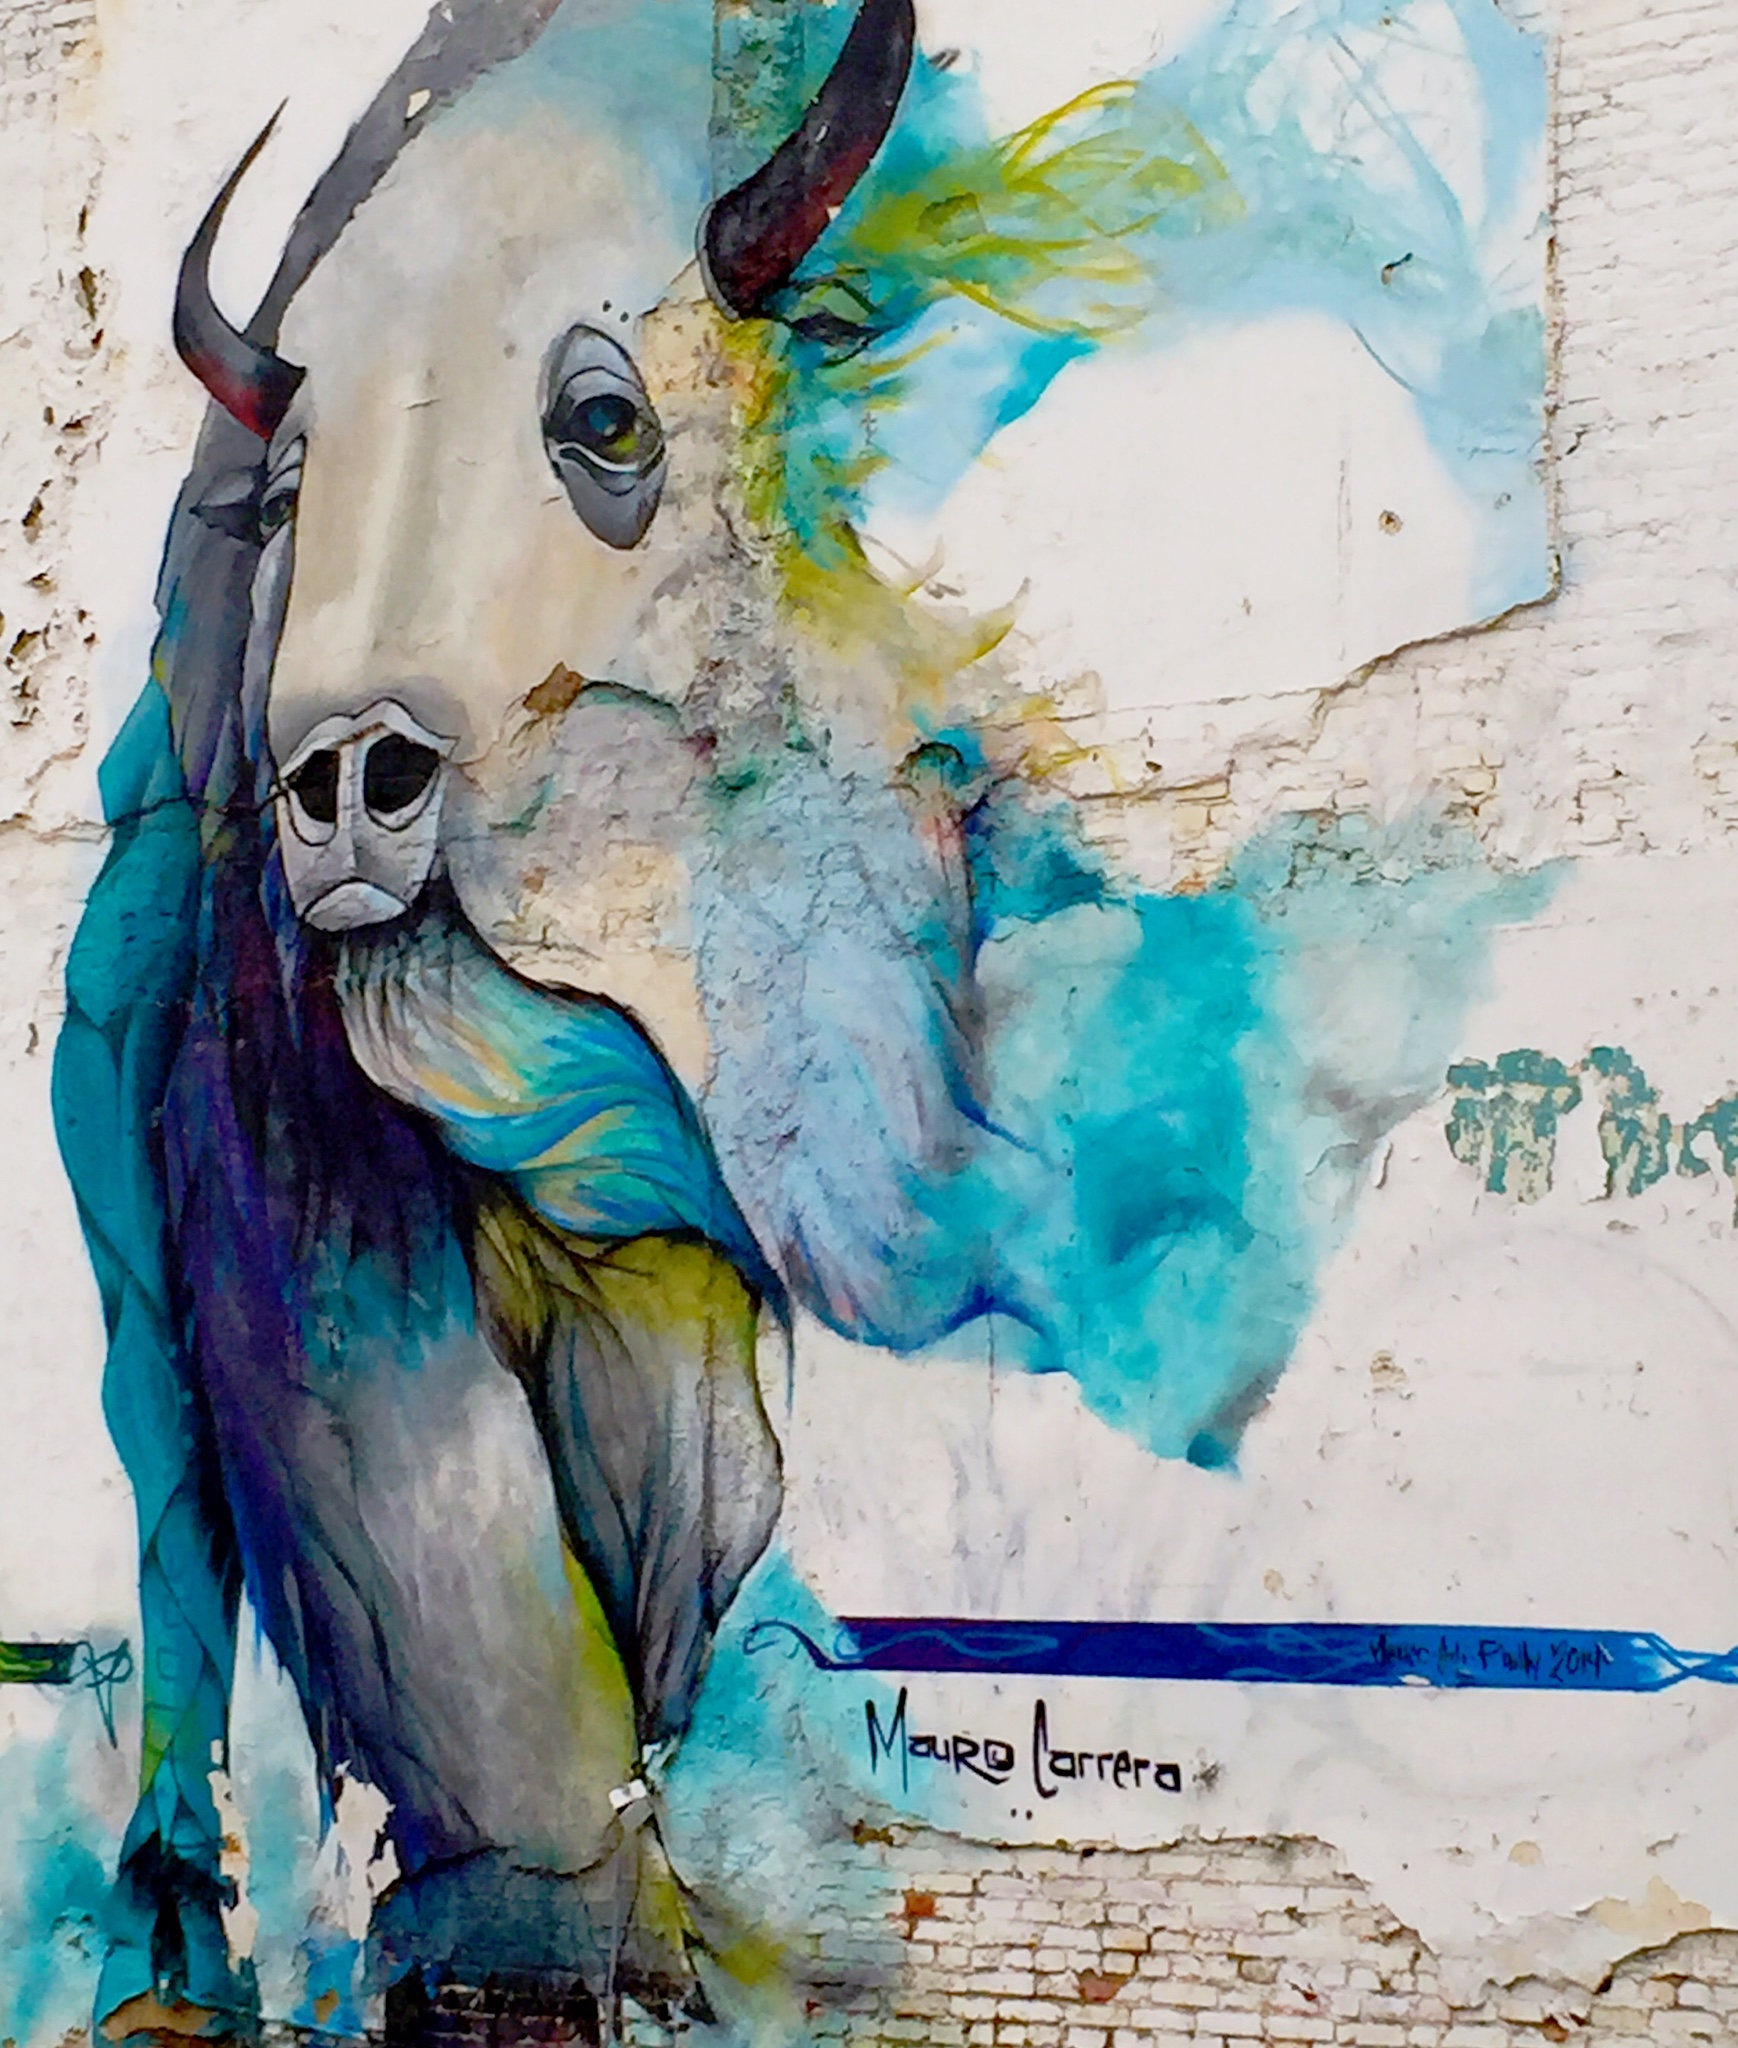 philadelphia mural graffiti wall art | buffalo by mauro carrera